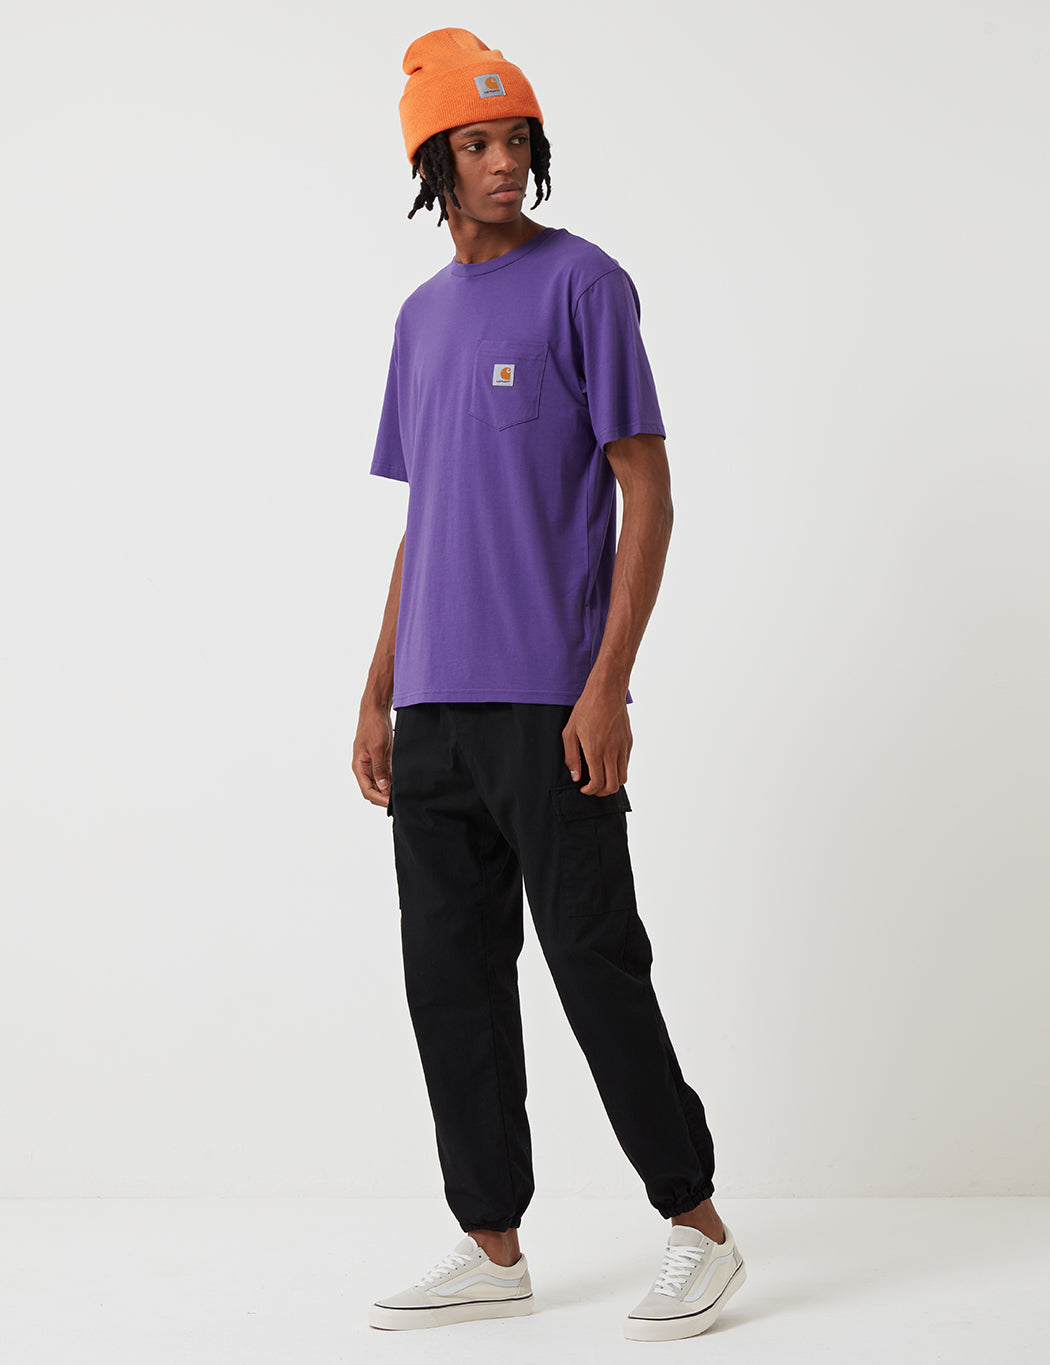 Carhartt-WIP Pocket T-Shirt - Frosted Violet